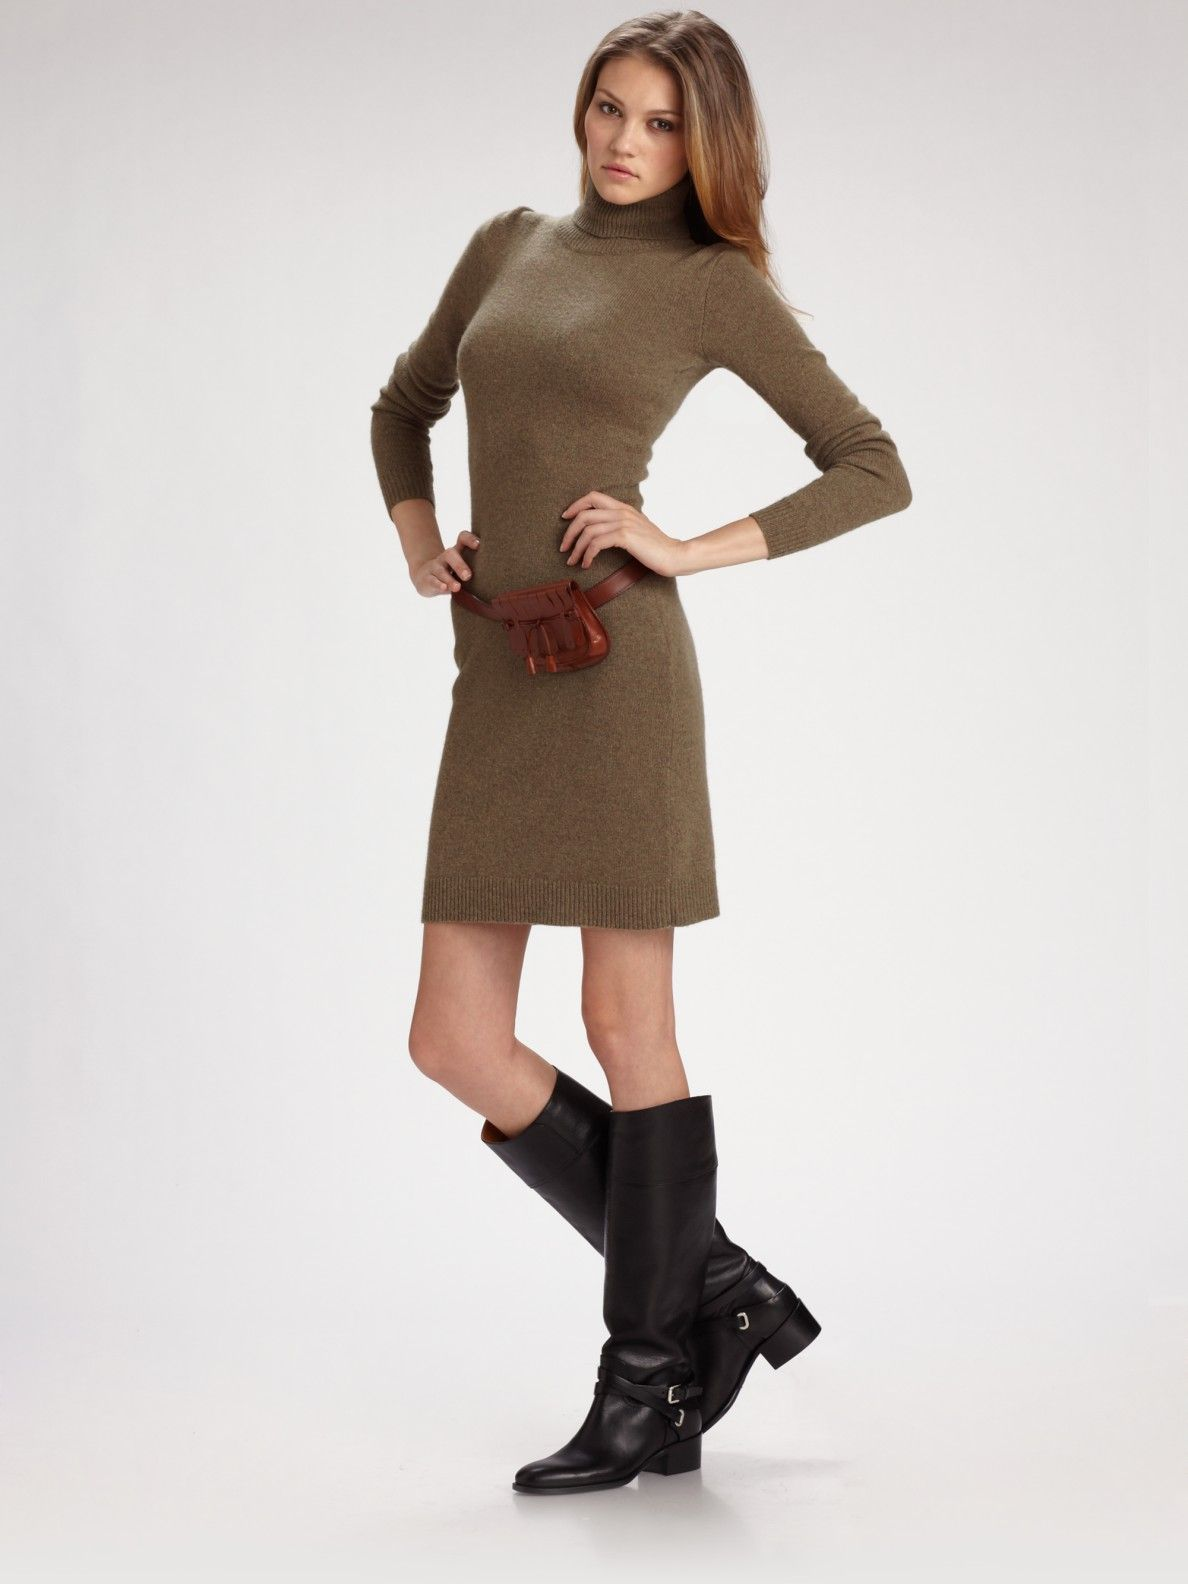 Women's Green Turtleneck Sweater Dress | Ralph lauren, Tans and Blue